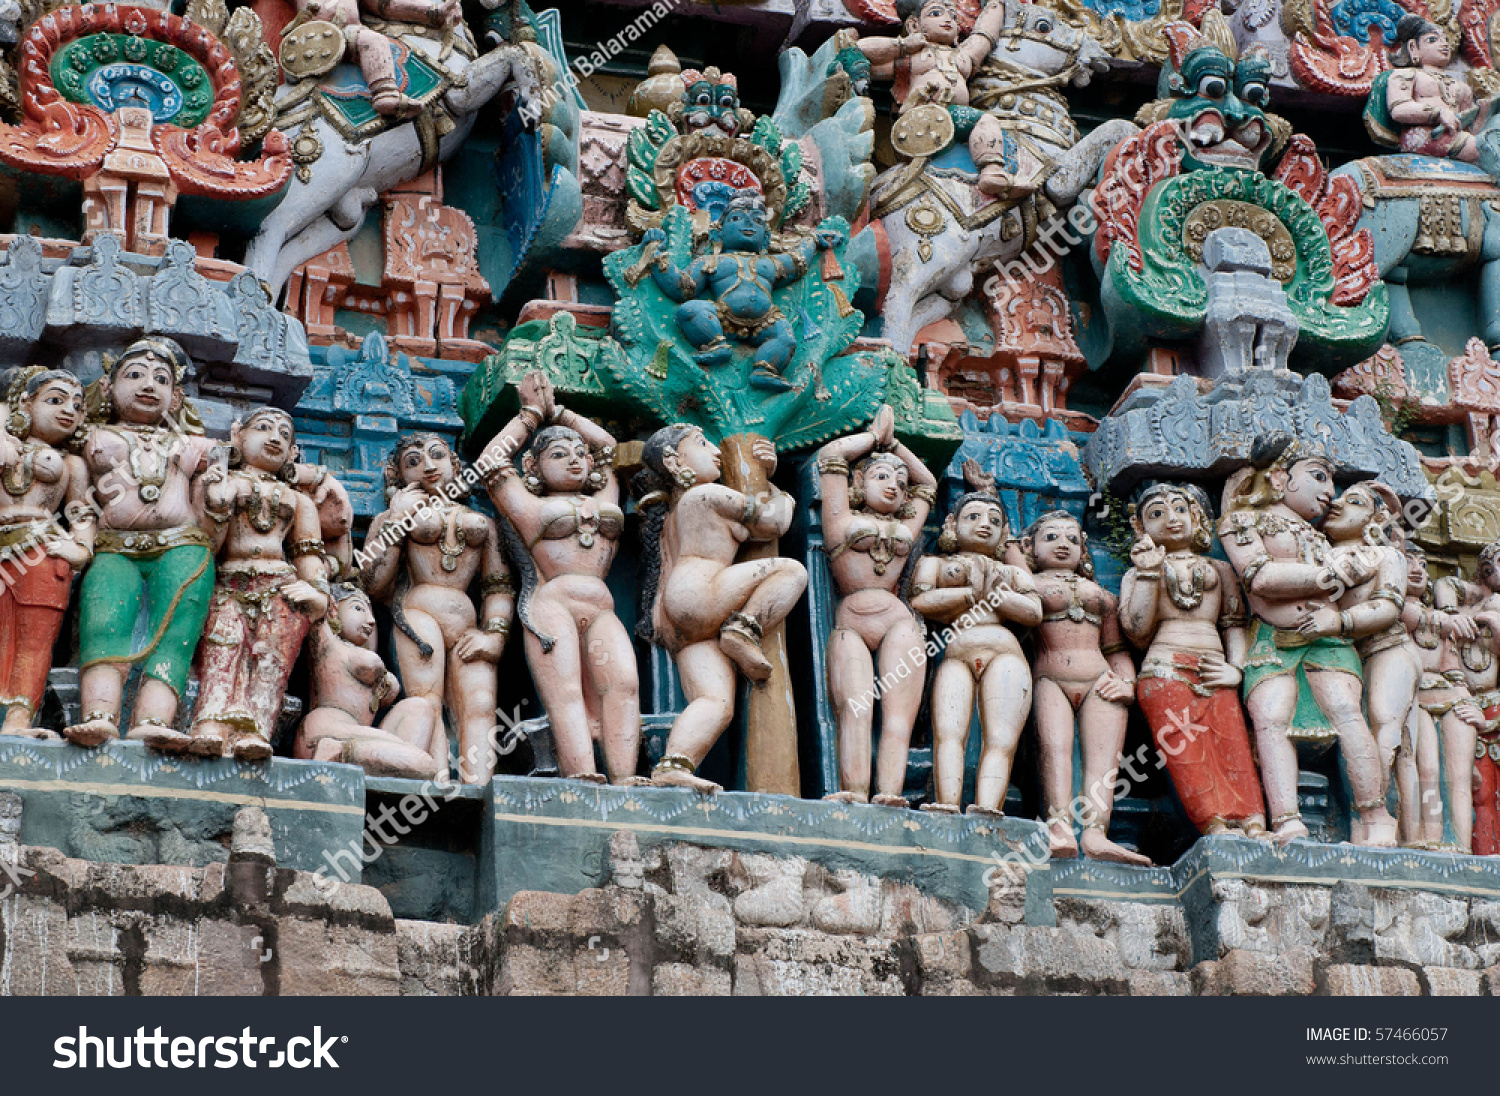 Sorry, that collection of erotic temple art agree